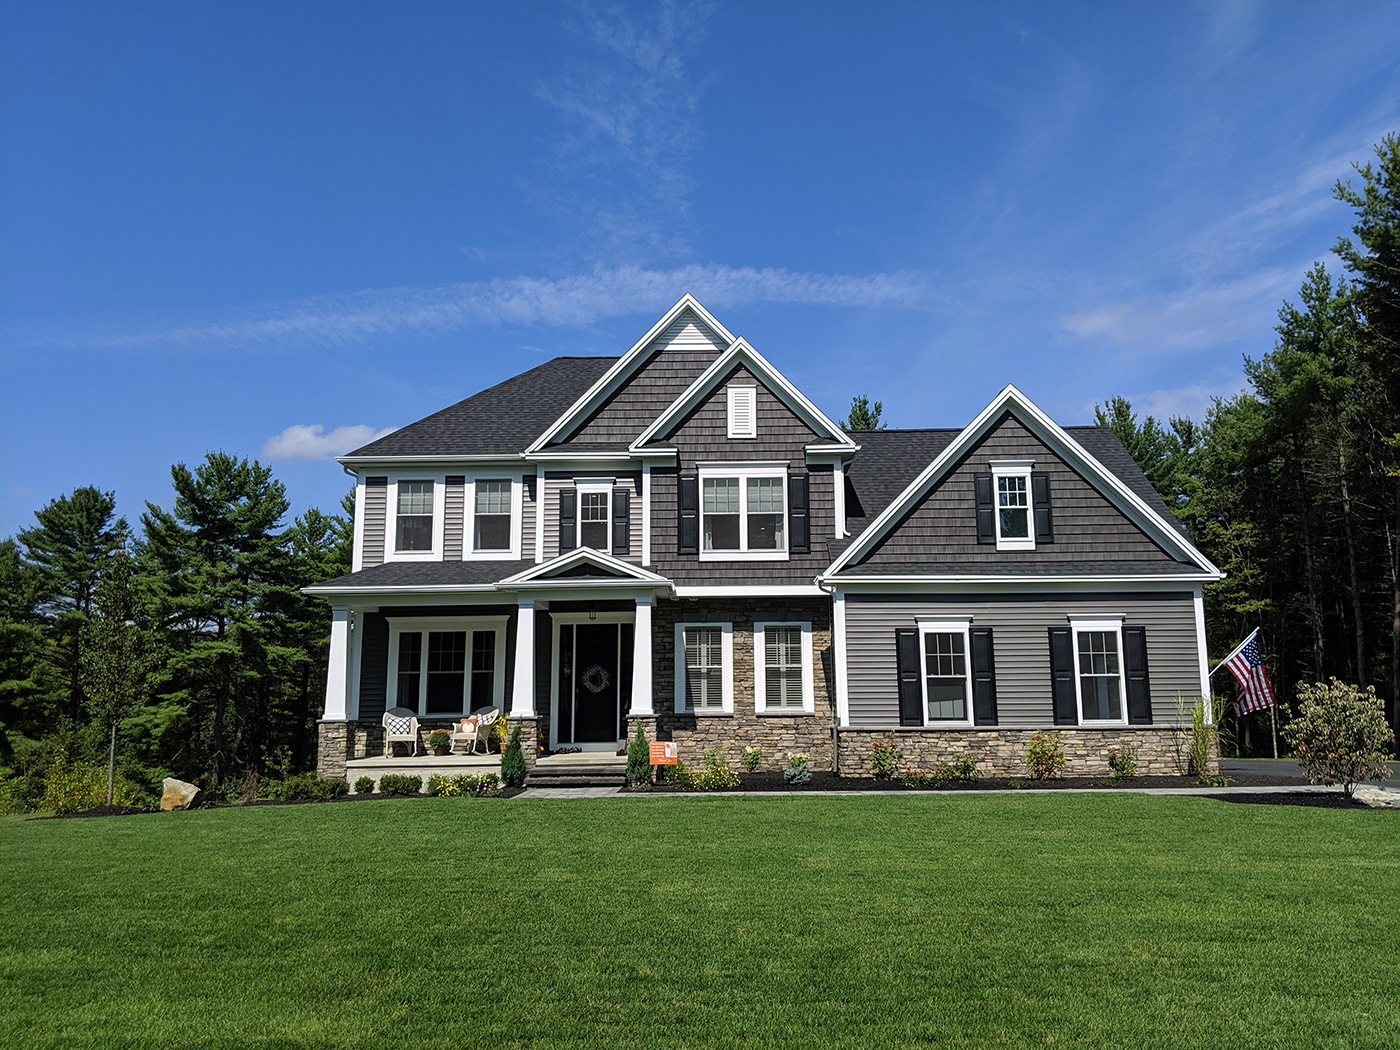 2019 Saratoga showcase home #6 by bonacio construction